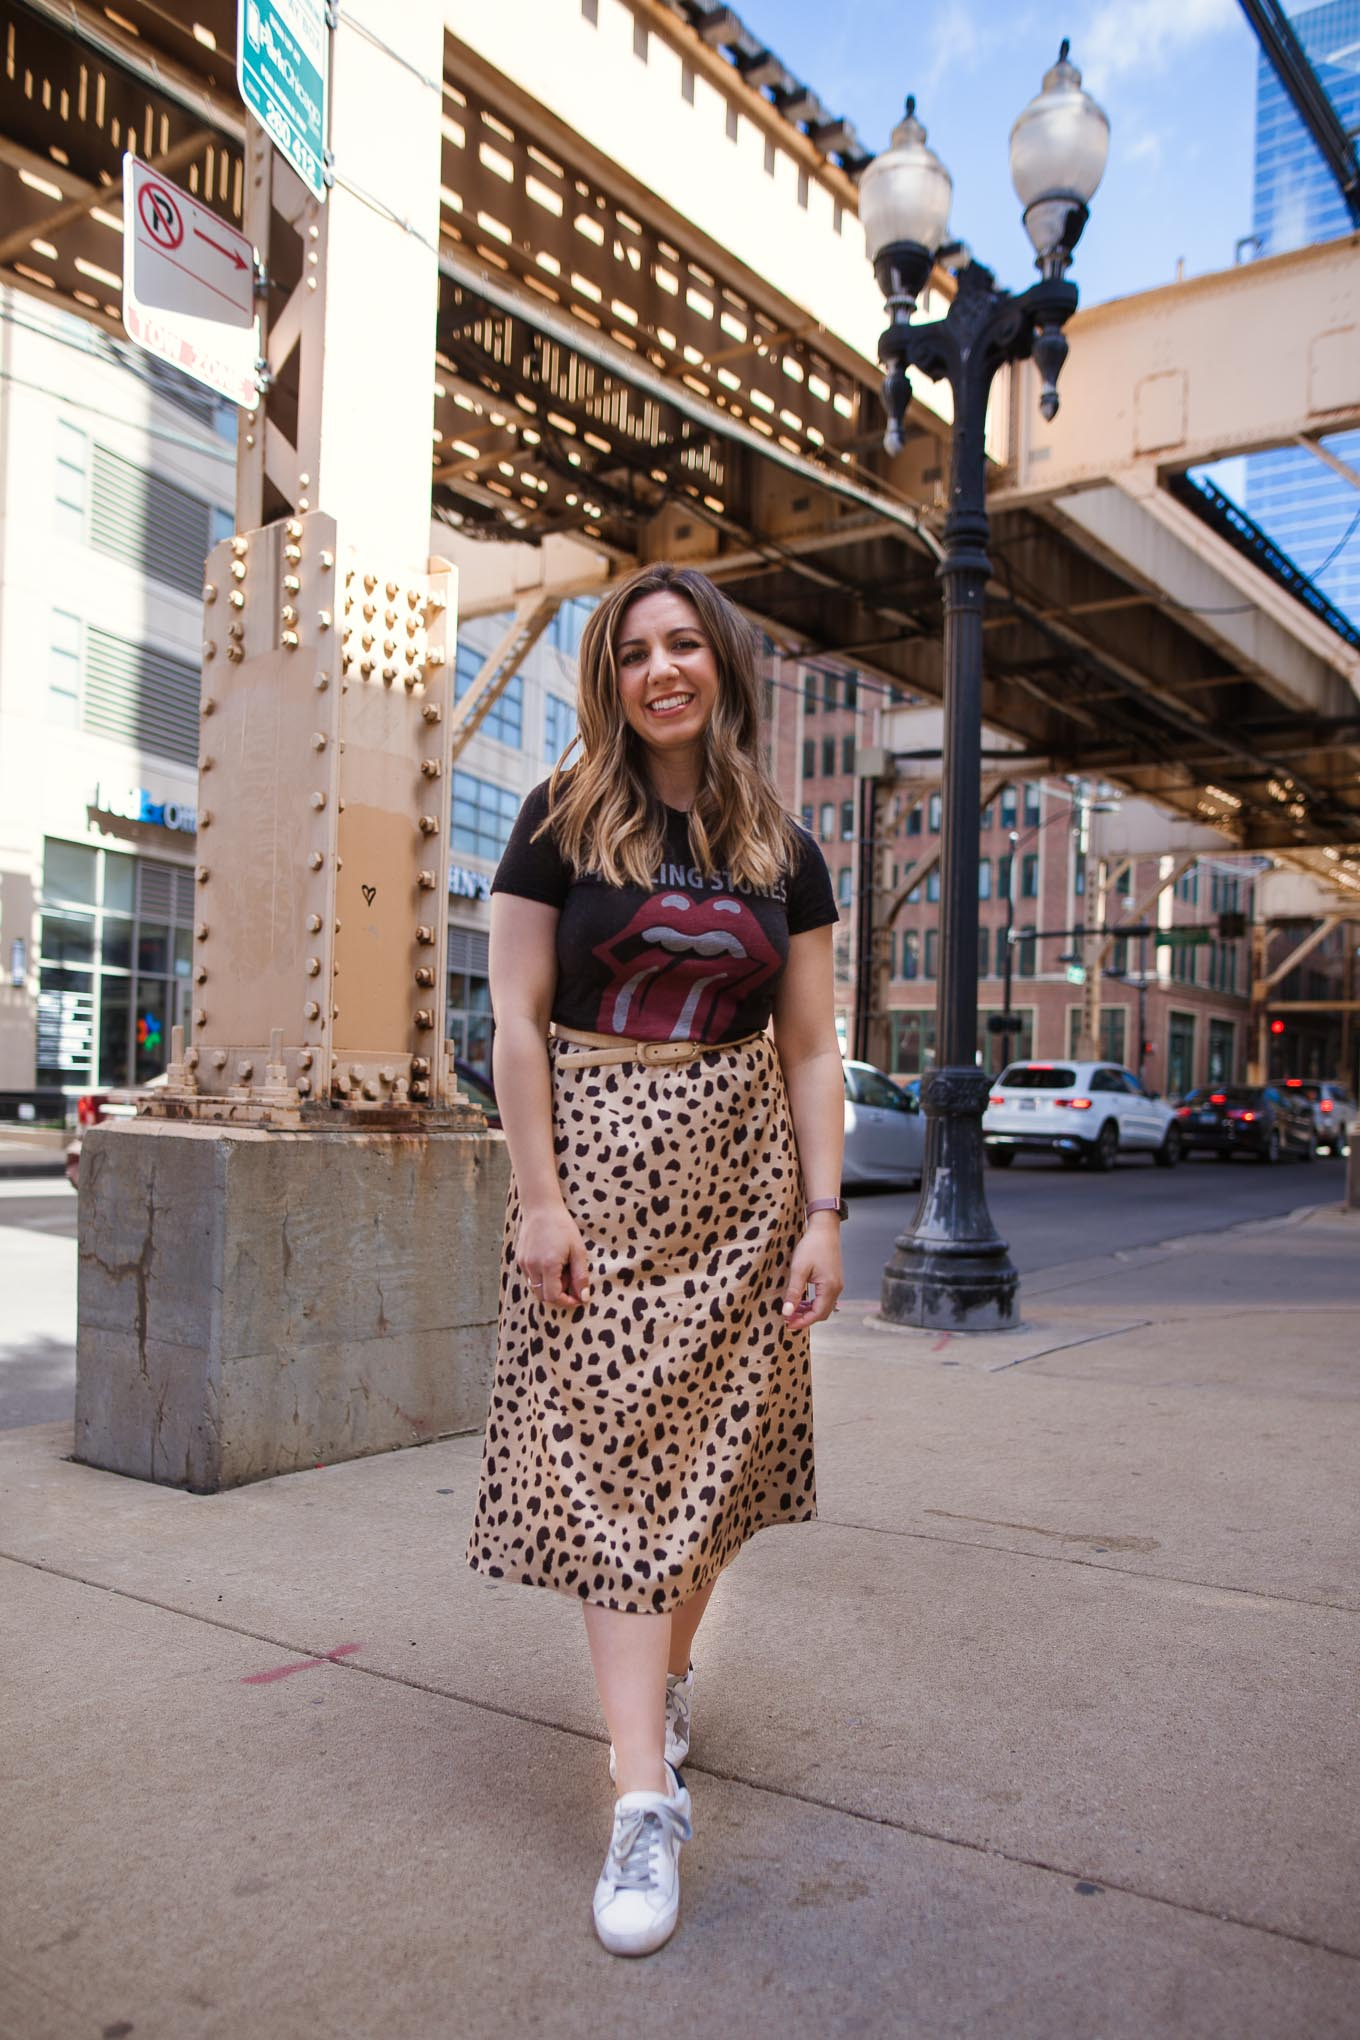 $30 Amazon Leopard Skirt by popular Chicago blog, Glass of Glam: image of a woman standing outside by a brick building and wearing a Amazon Keasmto Leopard Midi Skirt Plus Size for Women, Target Women's The Rolling Stones Short Sleeve Graphic T-Shirt, SheIn Star Patch Lace Up Splice Sneakers, and Target Revlon Super Lustrous The Luscious Mattes Lipstick.